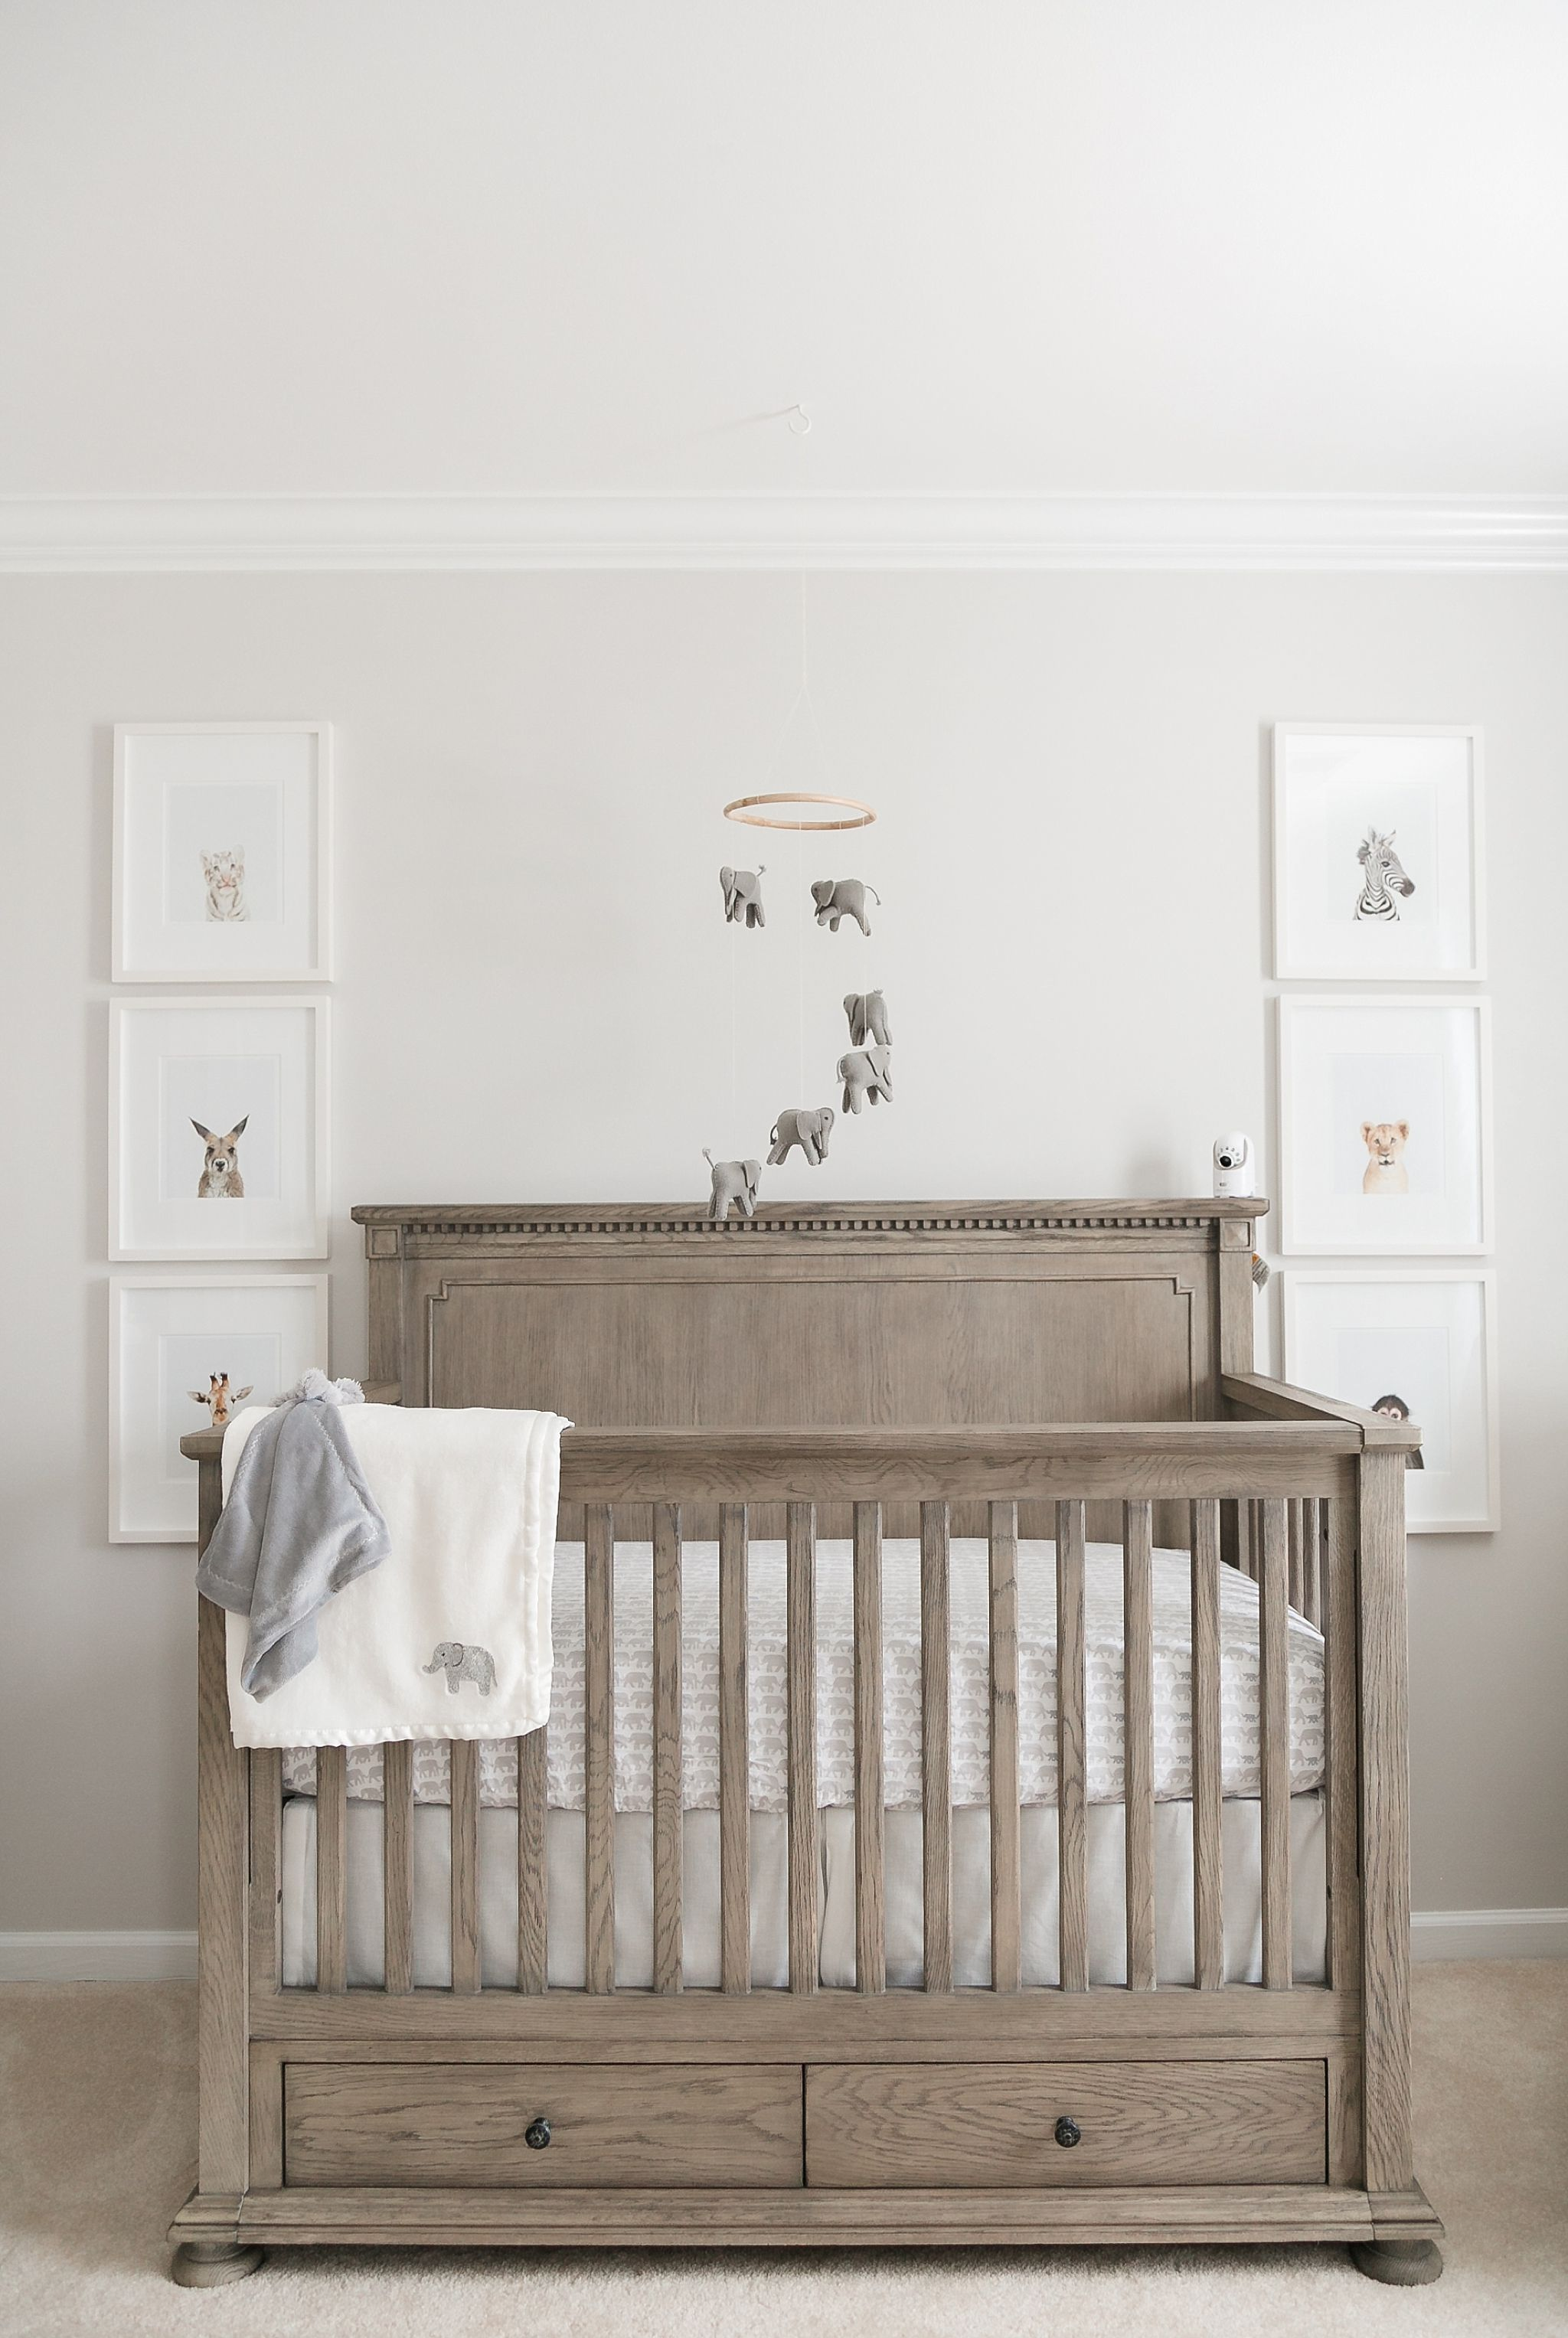 Our Baby Boy's Grey Elephant Nursery #restorationhardware